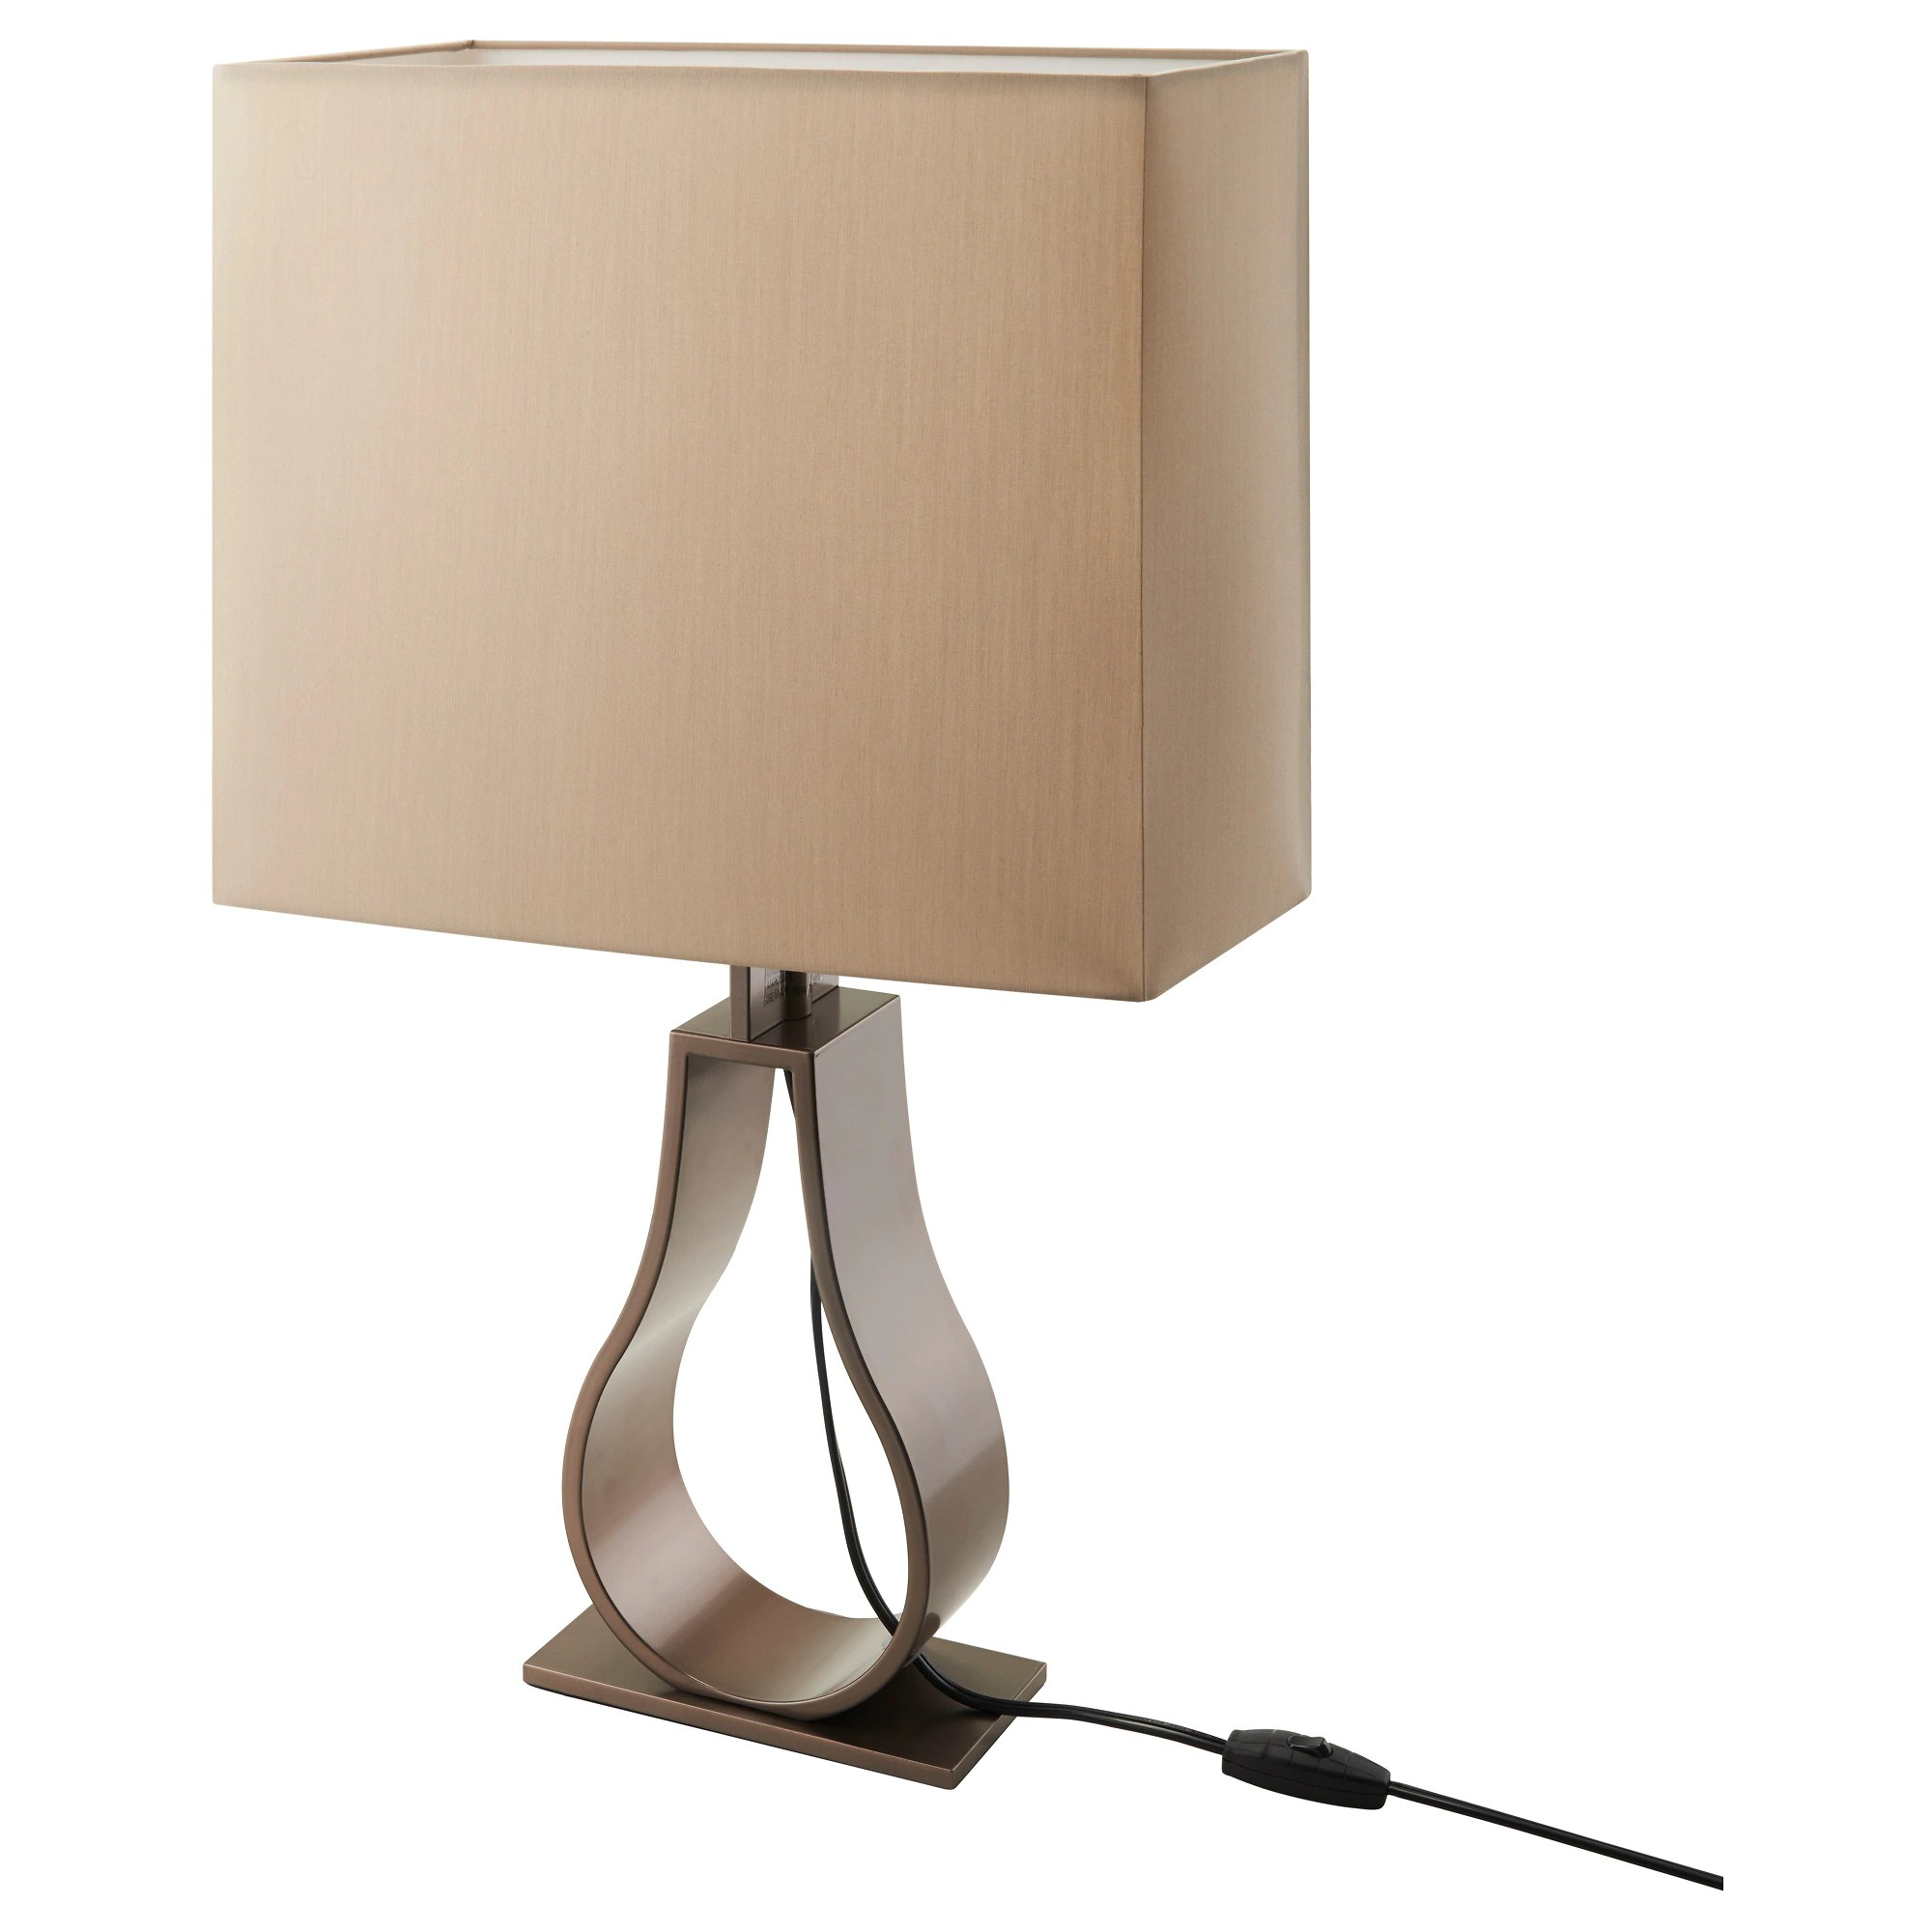 Klabb Table Lamp Light Brown Bronze Color Ikea - Lampe De Salon Moderne Ikea